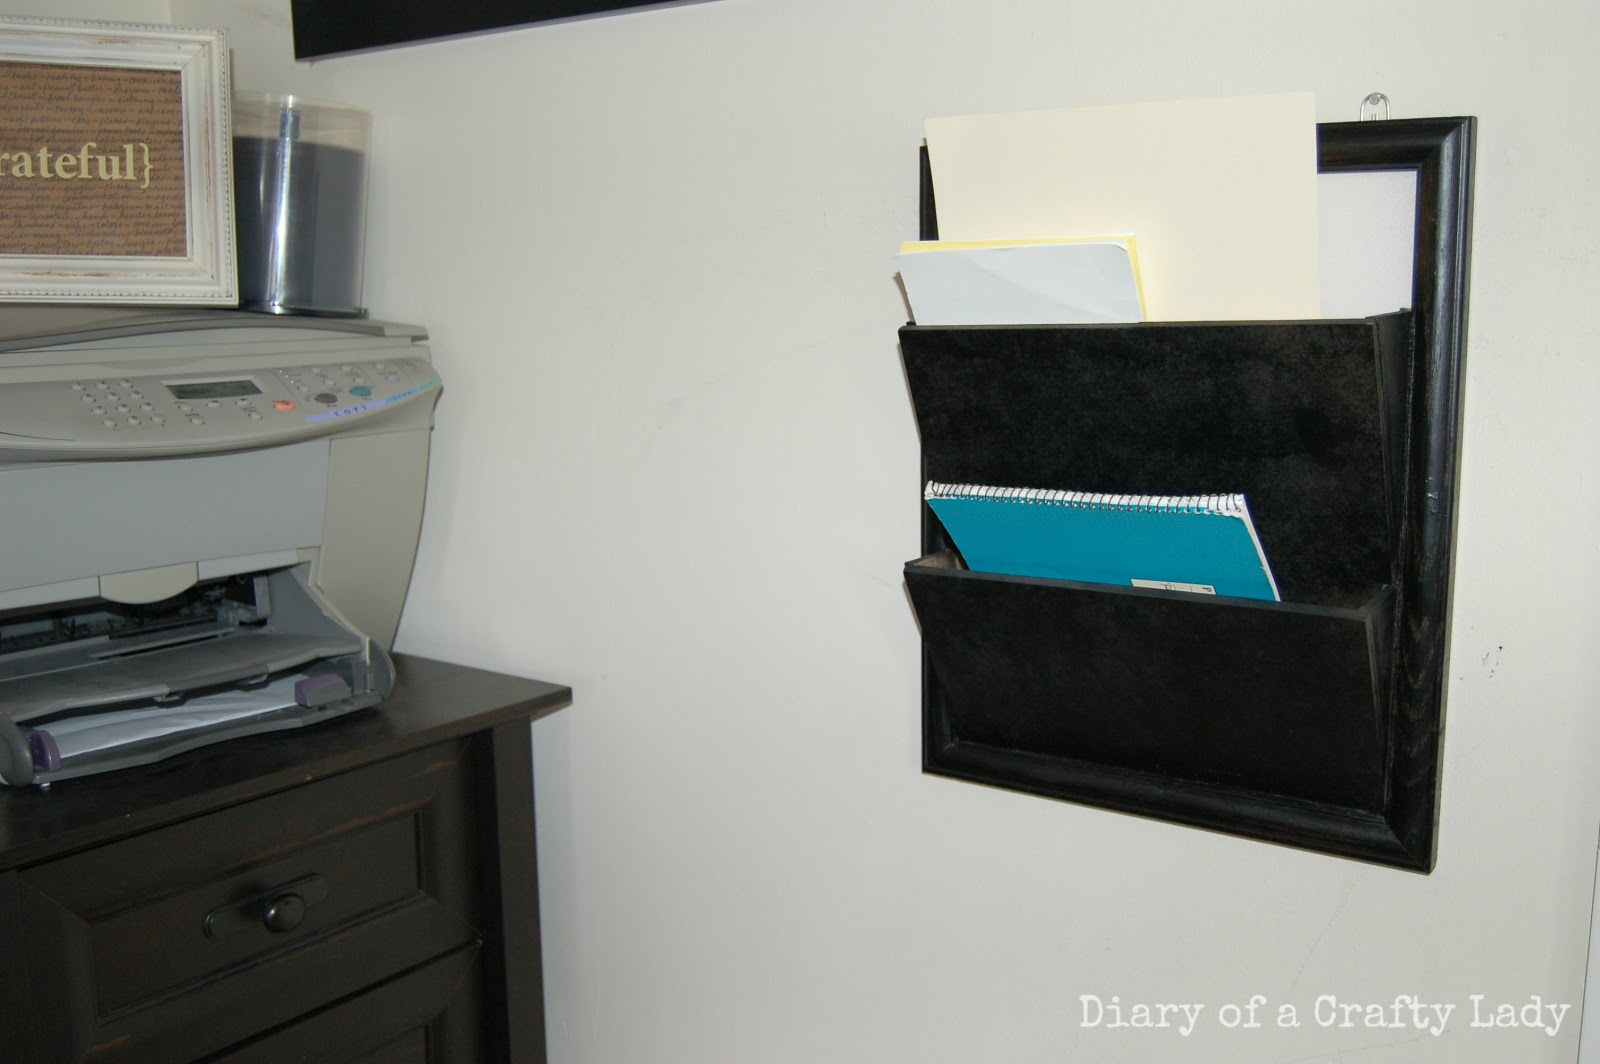 diary of a crafty lady wall mounted paper or magazine. Black Bedroom Furniture Sets. Home Design Ideas